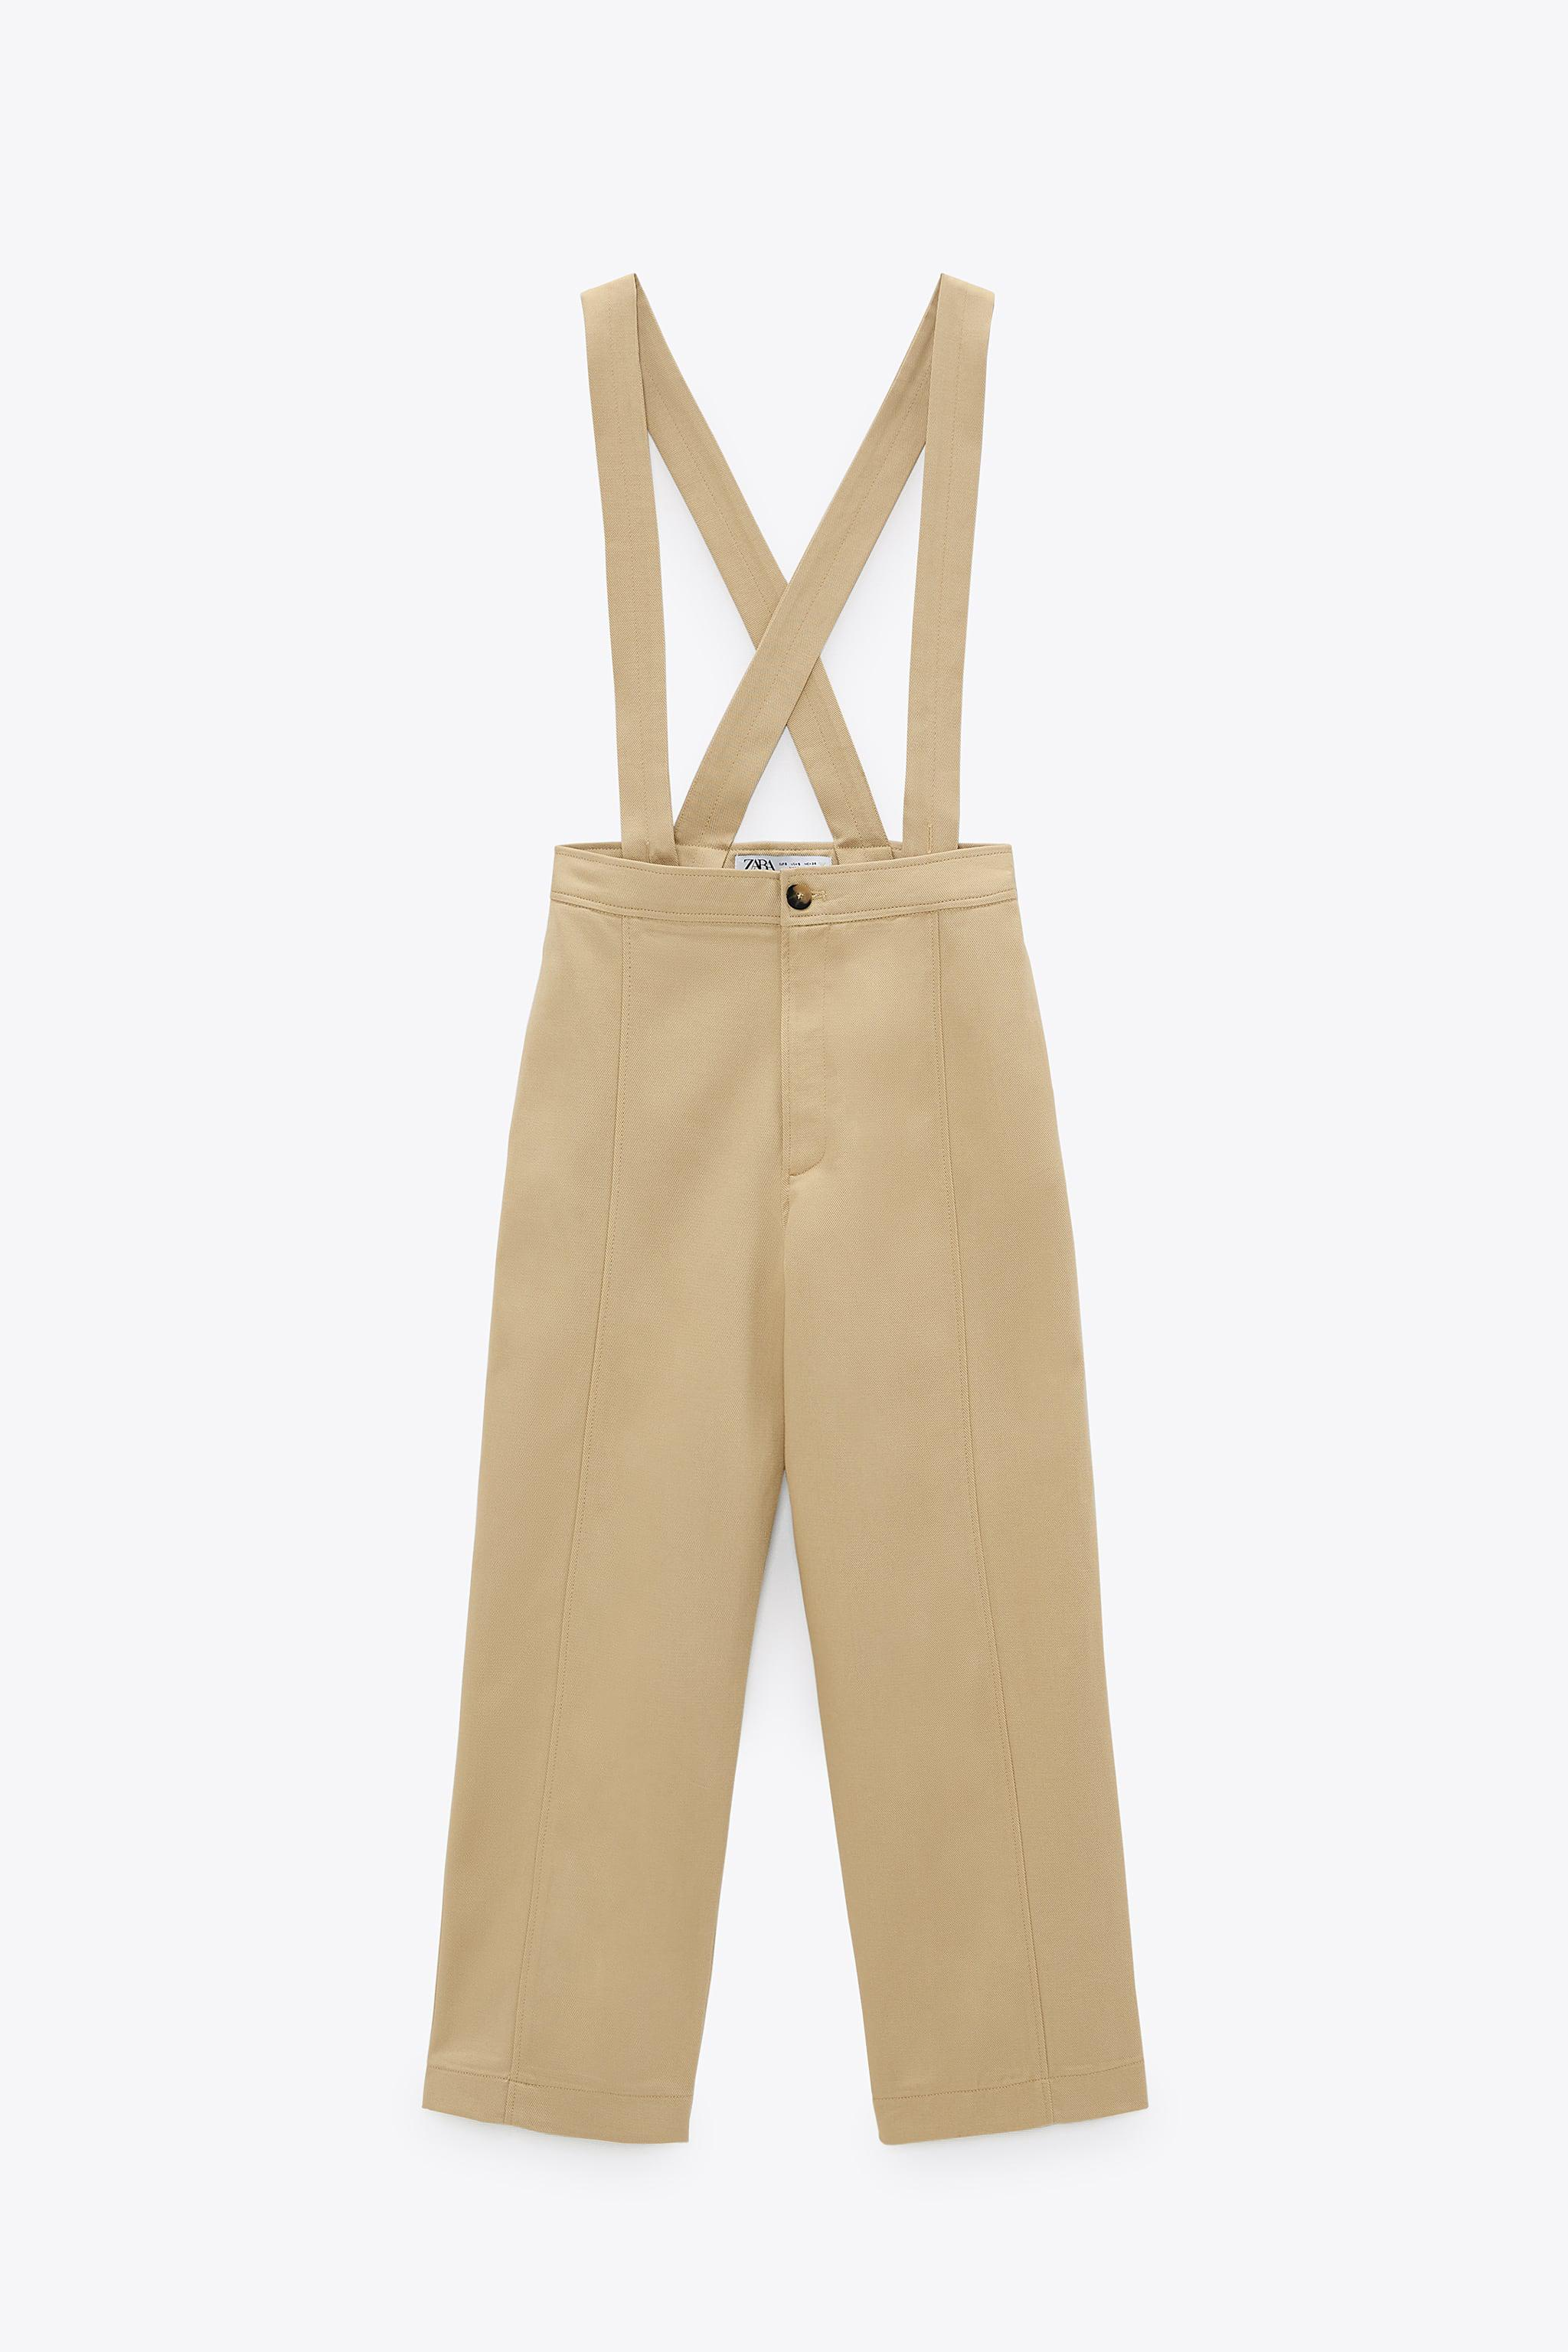 PANTS WITH SUSPENDERS 5